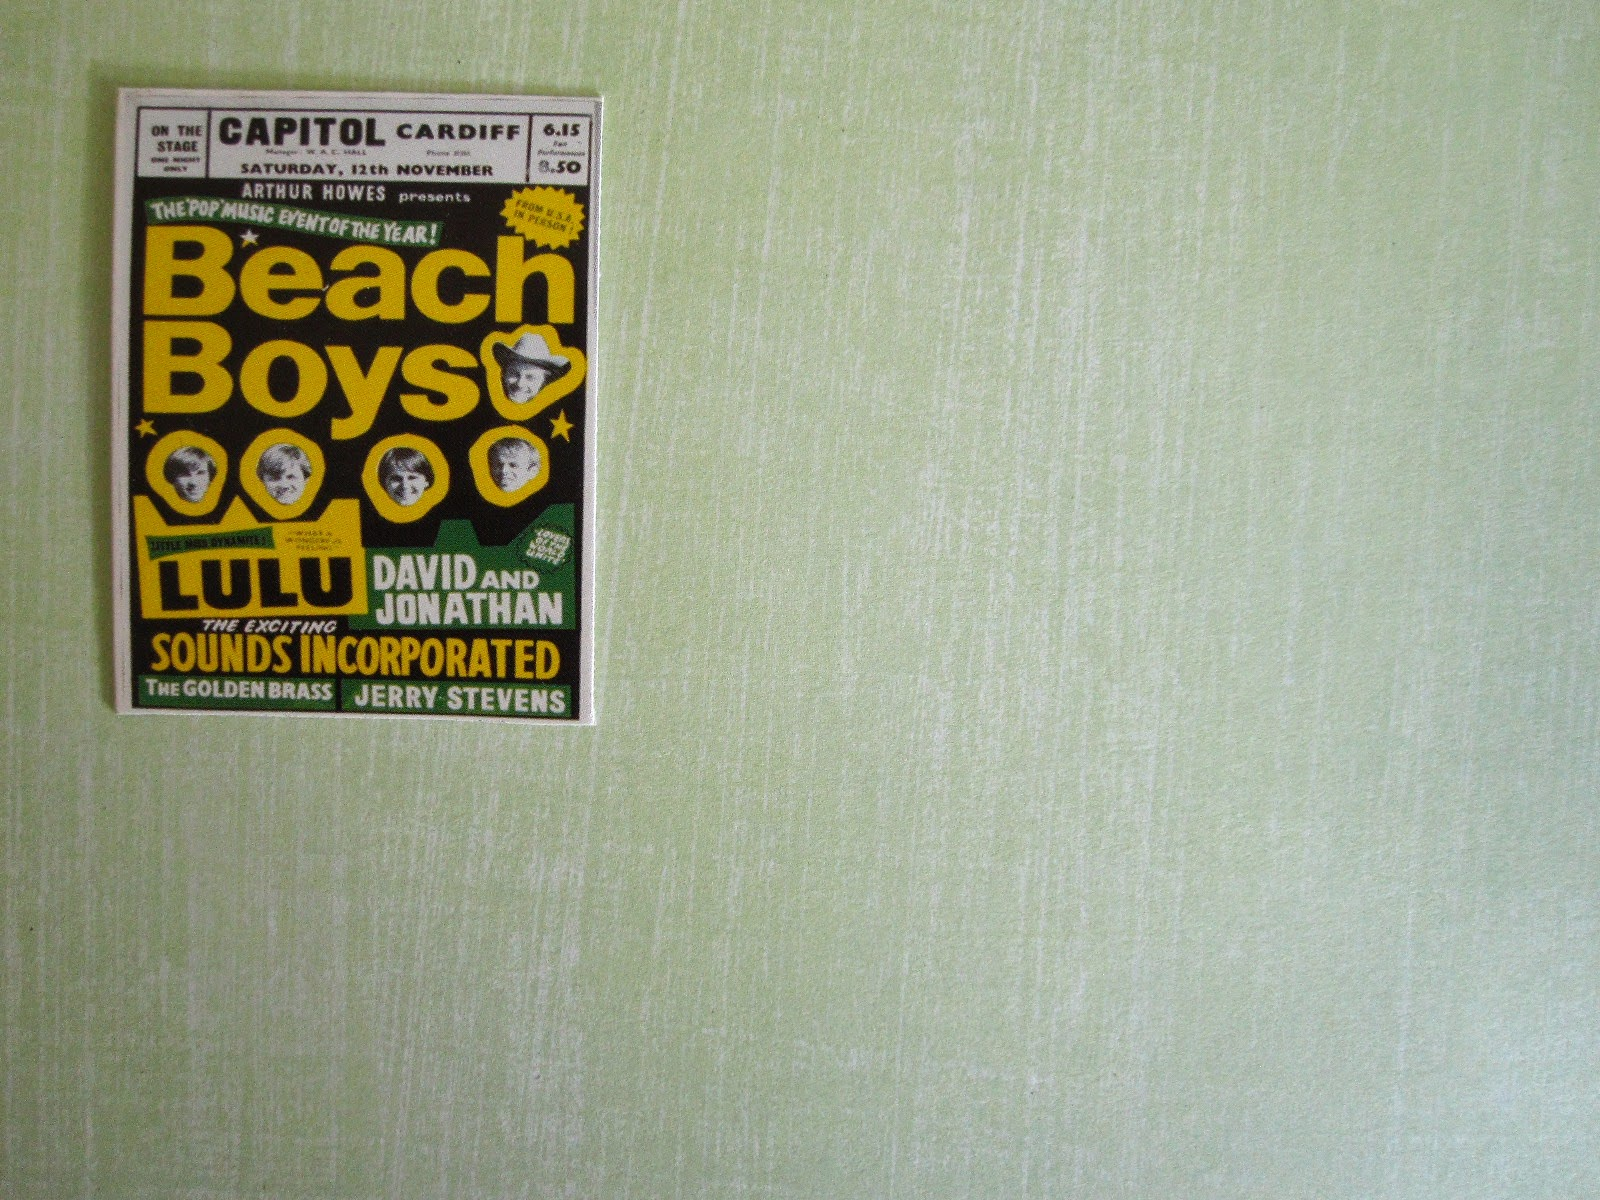 Bright 1960s Beach Boys poster  on a green wall.